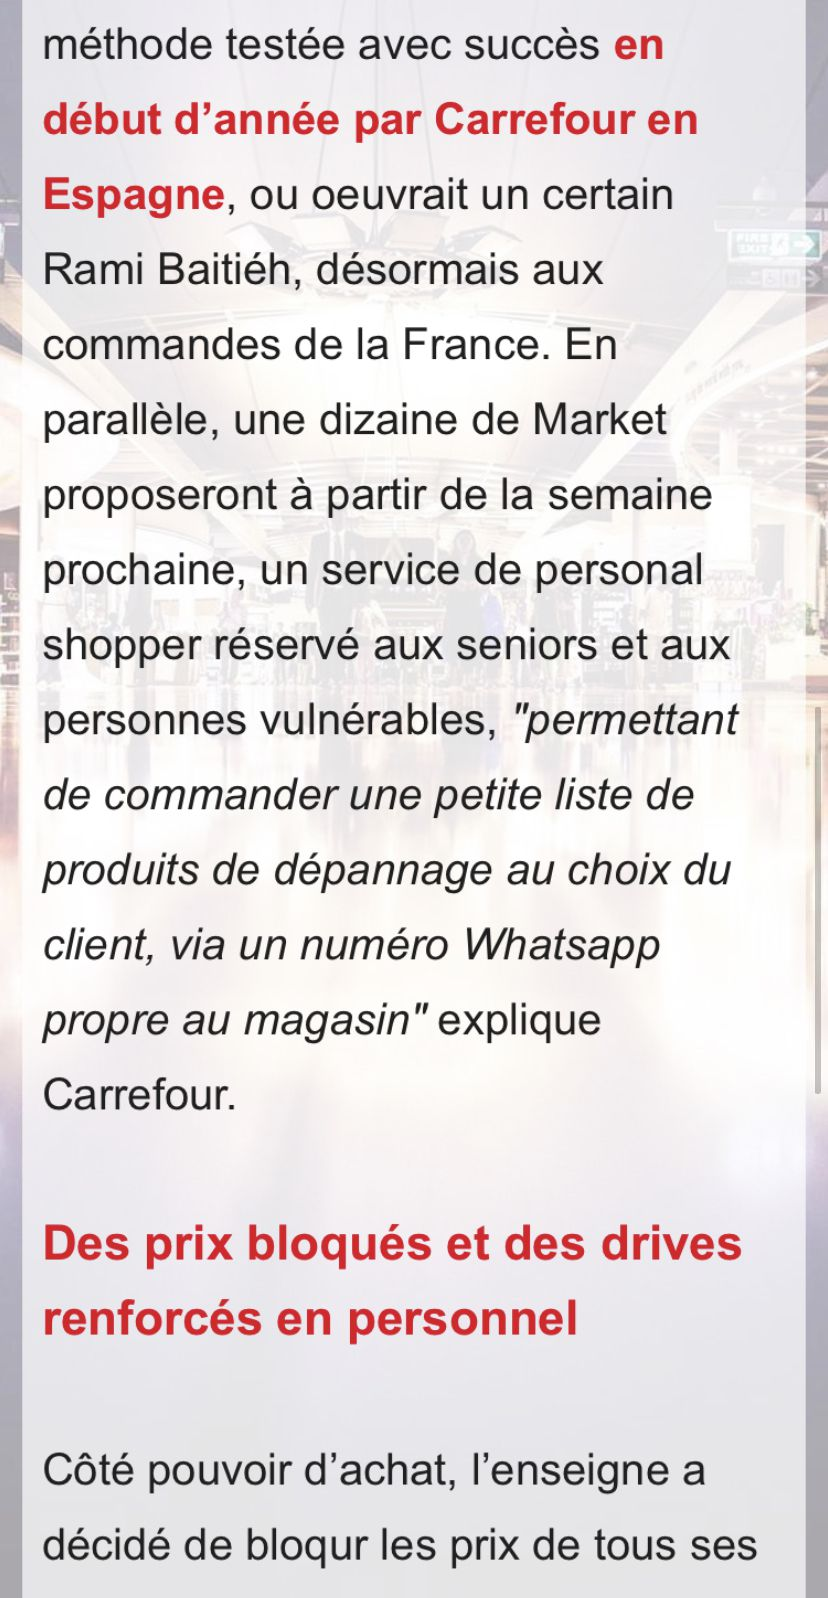 Commande via WhatsApp,blocage des prix,personnel shopper :Carrefour multiple les initiatives